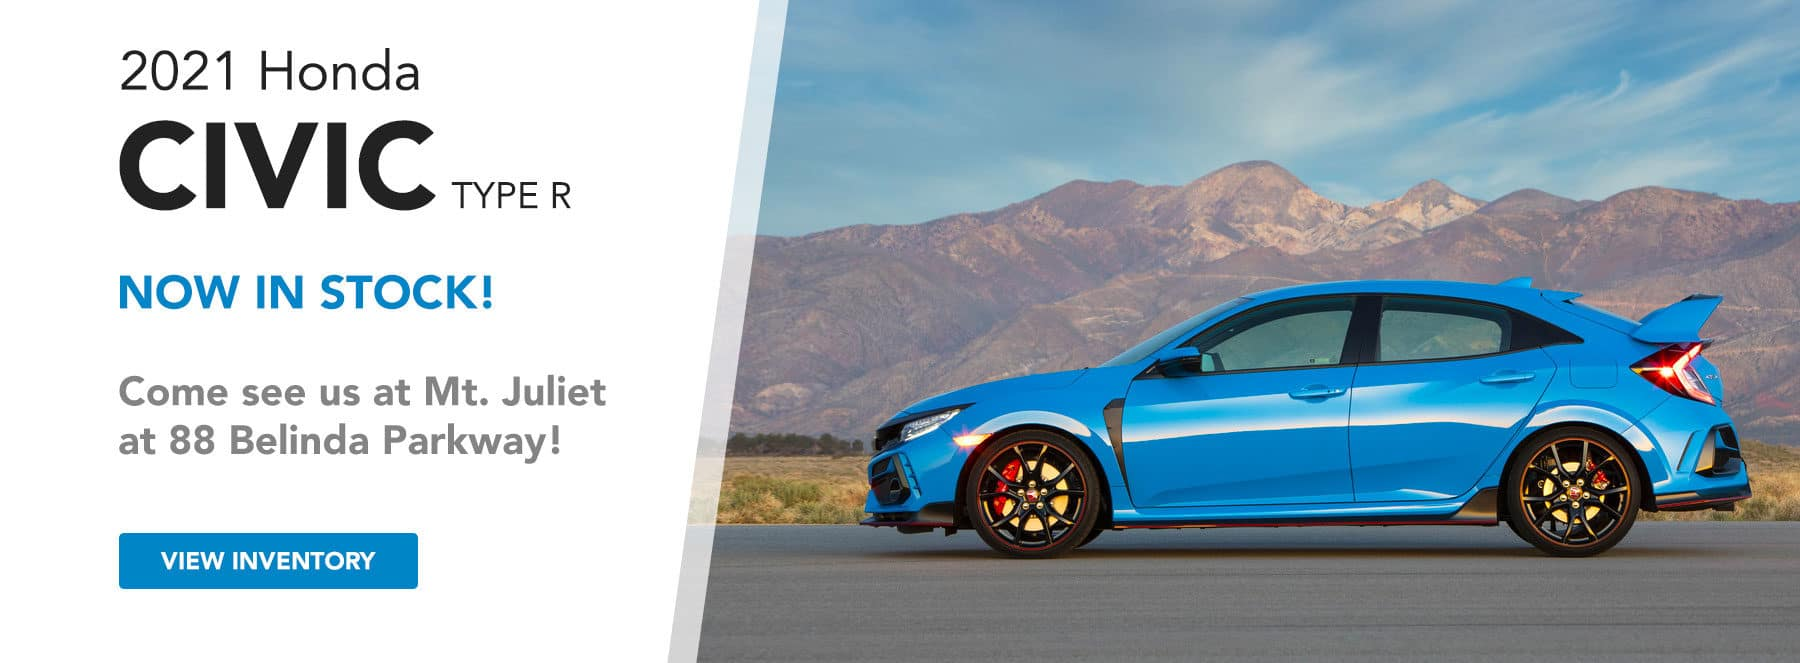 2021 Civics Type R Now in Stock! Come see us at Mt. Juliet at 88 Belinda Parkway!